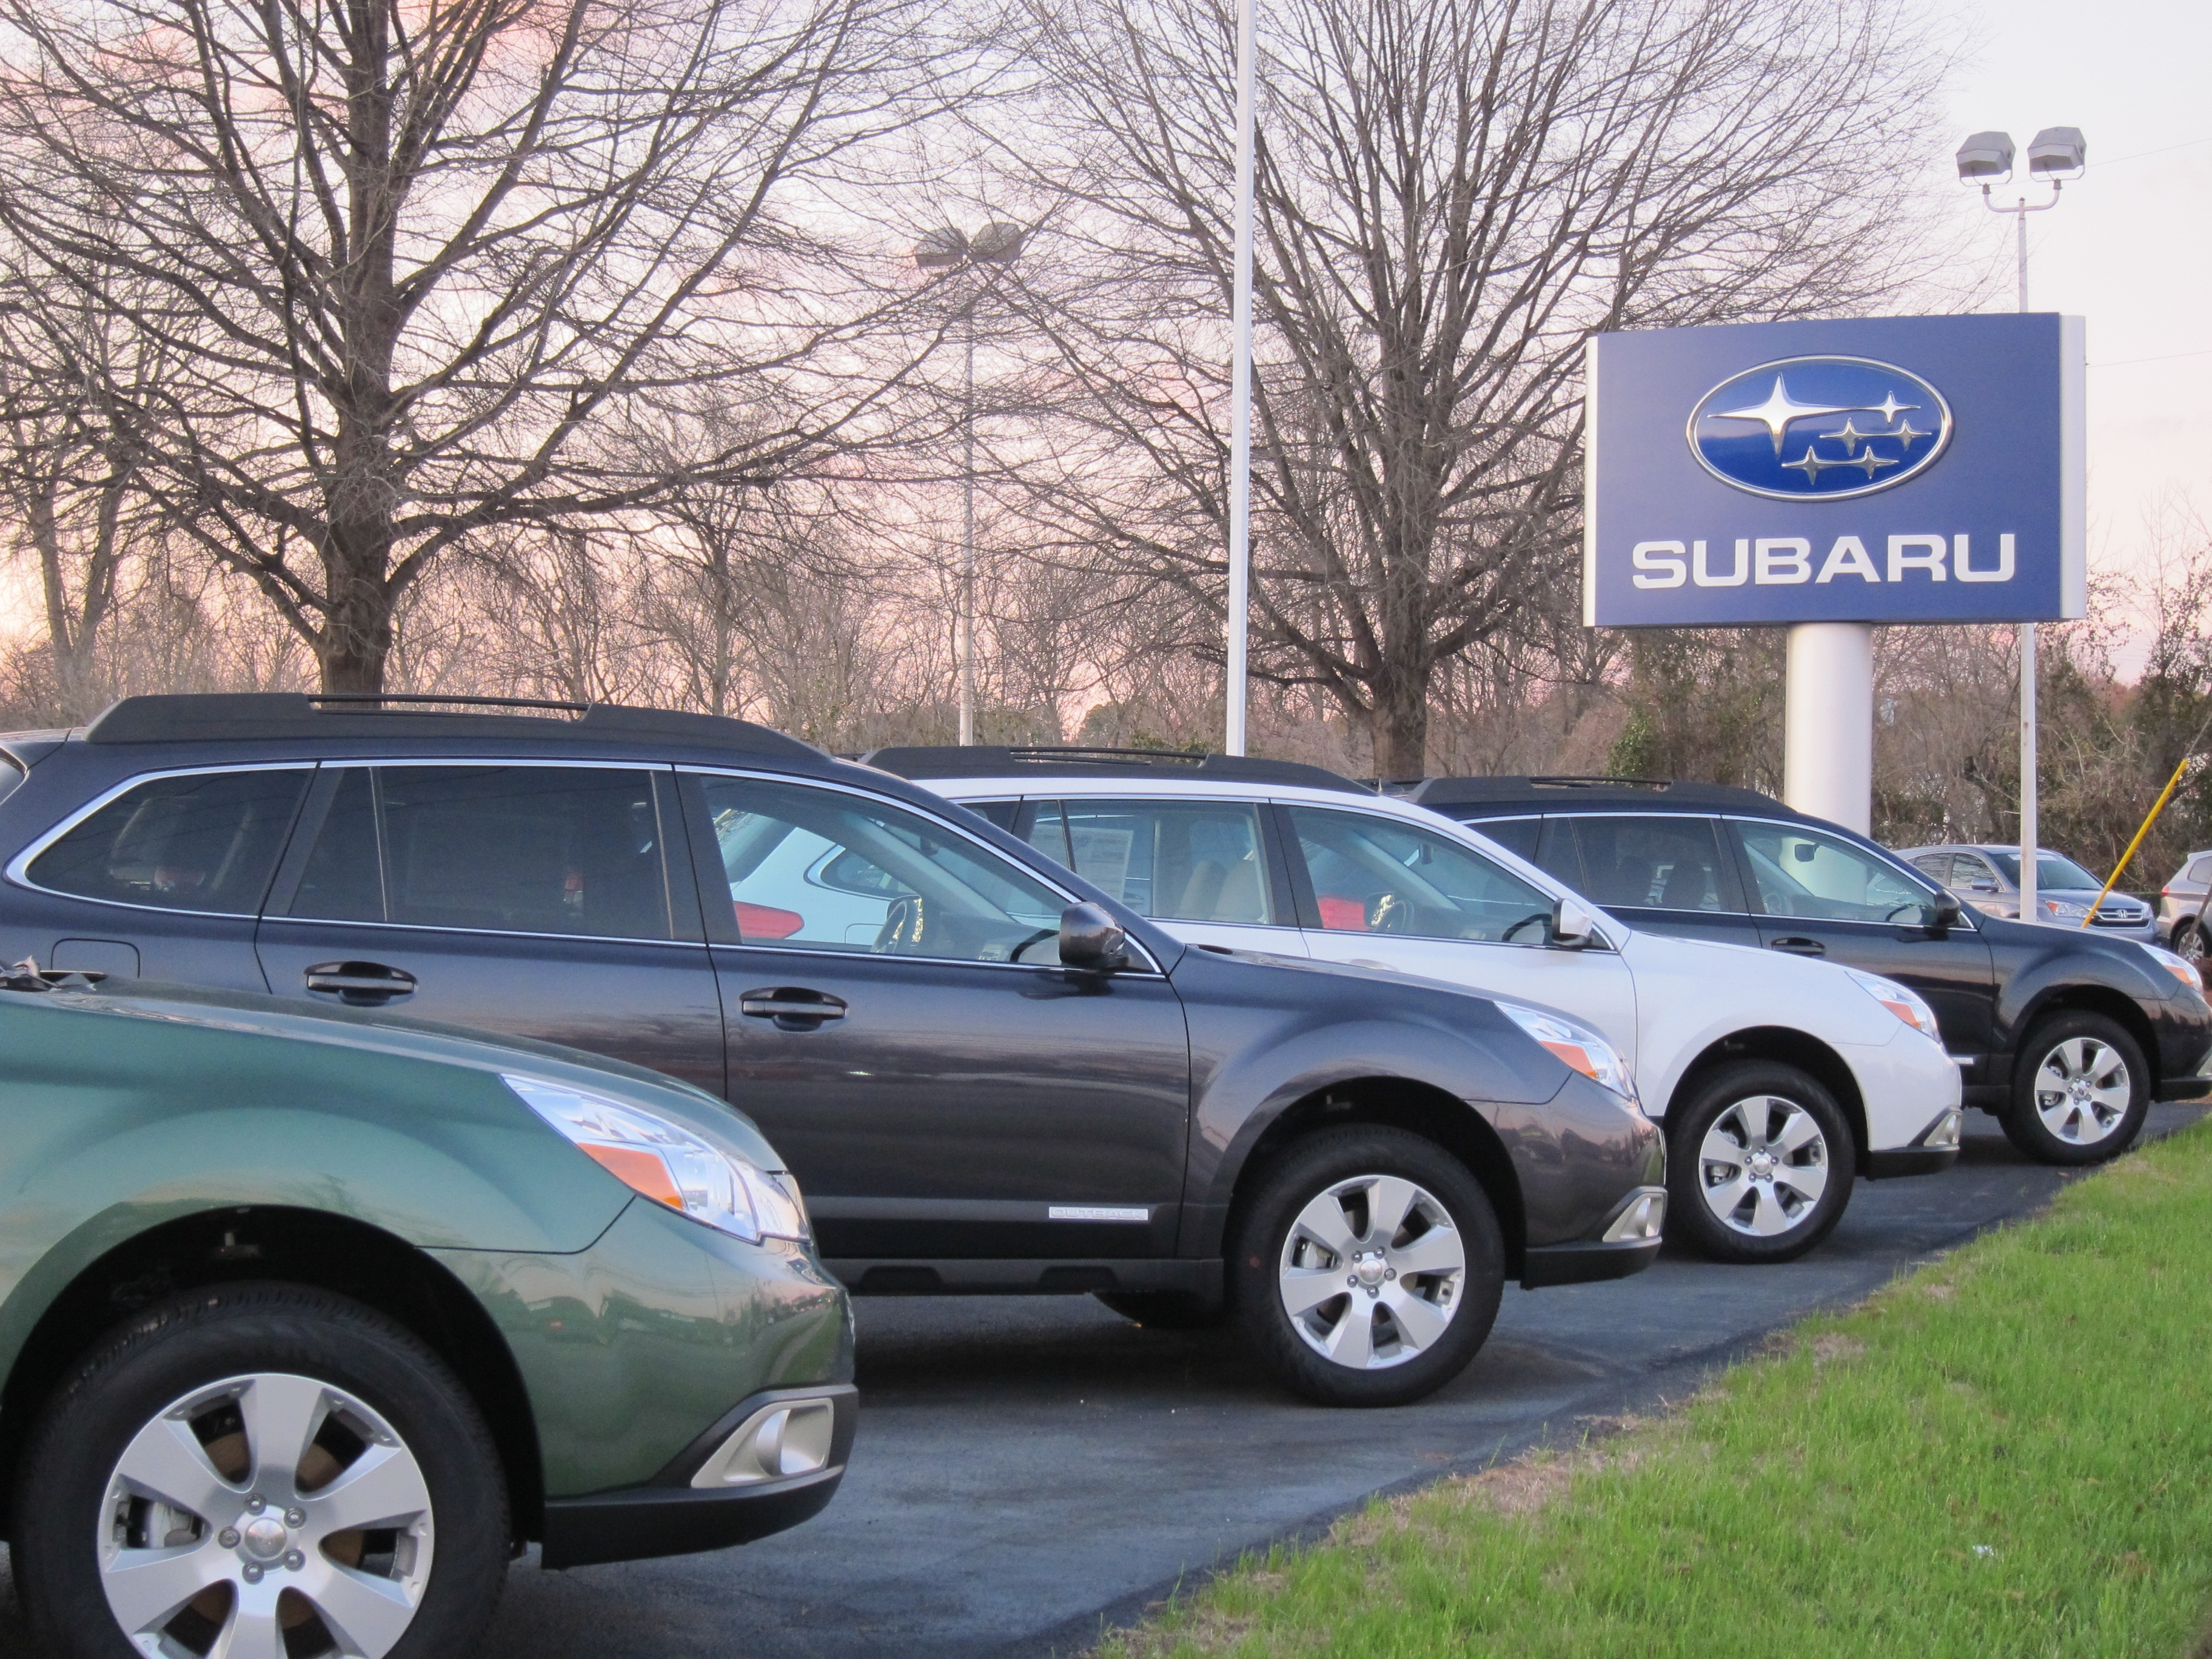 new subaru used car dealer in raleigh nc southern states subaru serves chapel hill cary. Black Bedroom Furniture Sets. Home Design Ideas